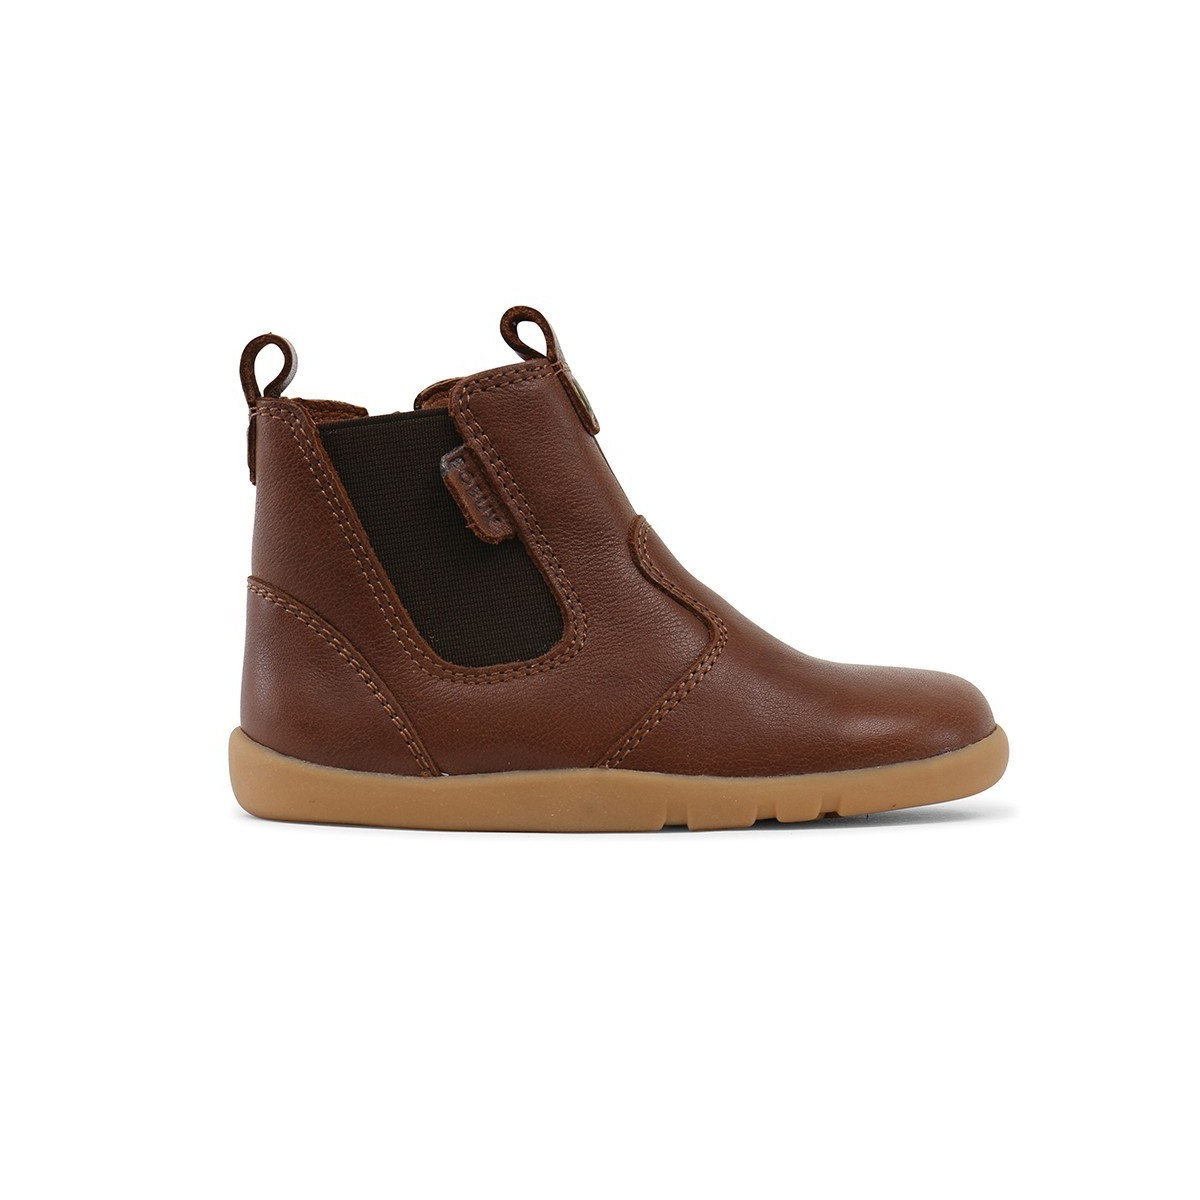 Boots Outback cuir Toffee